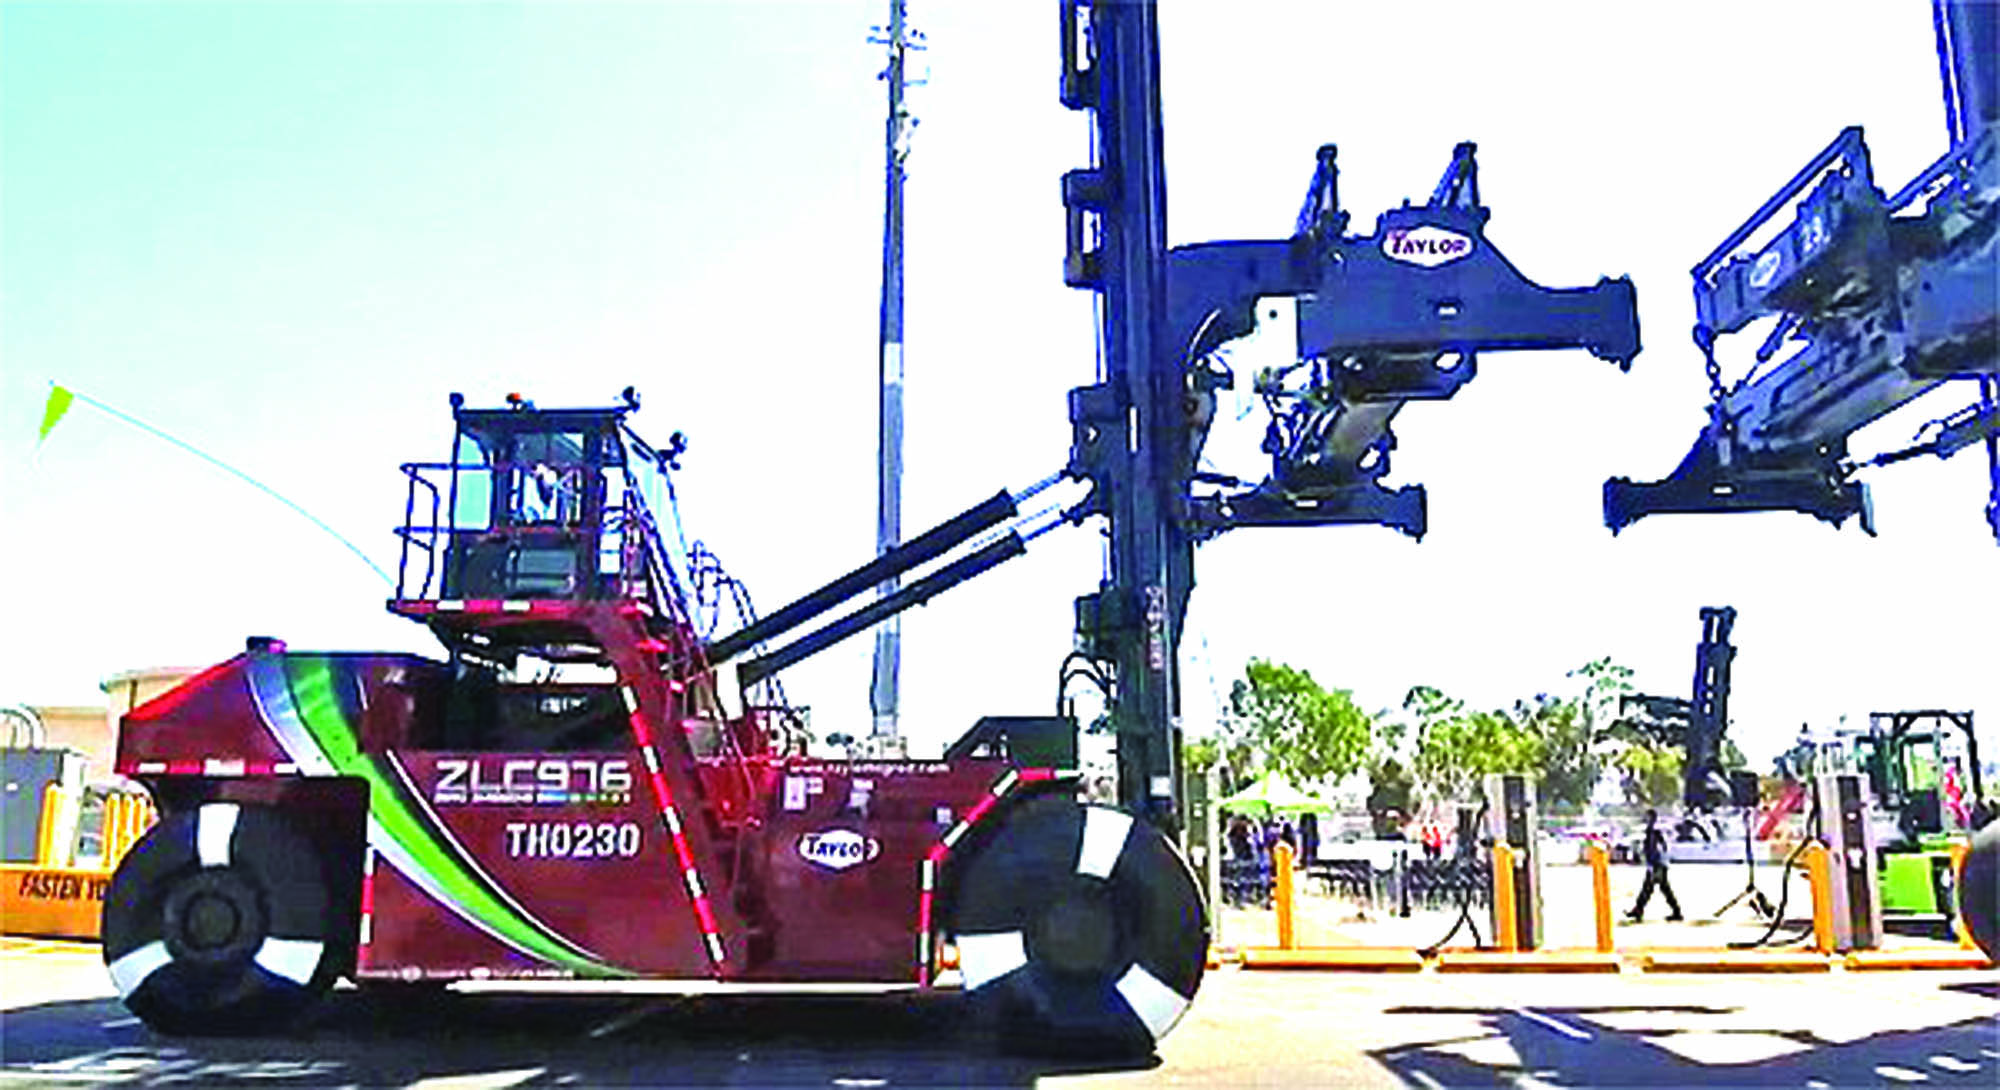 World's First Zero Emissions Handlers Introduced at LA Port